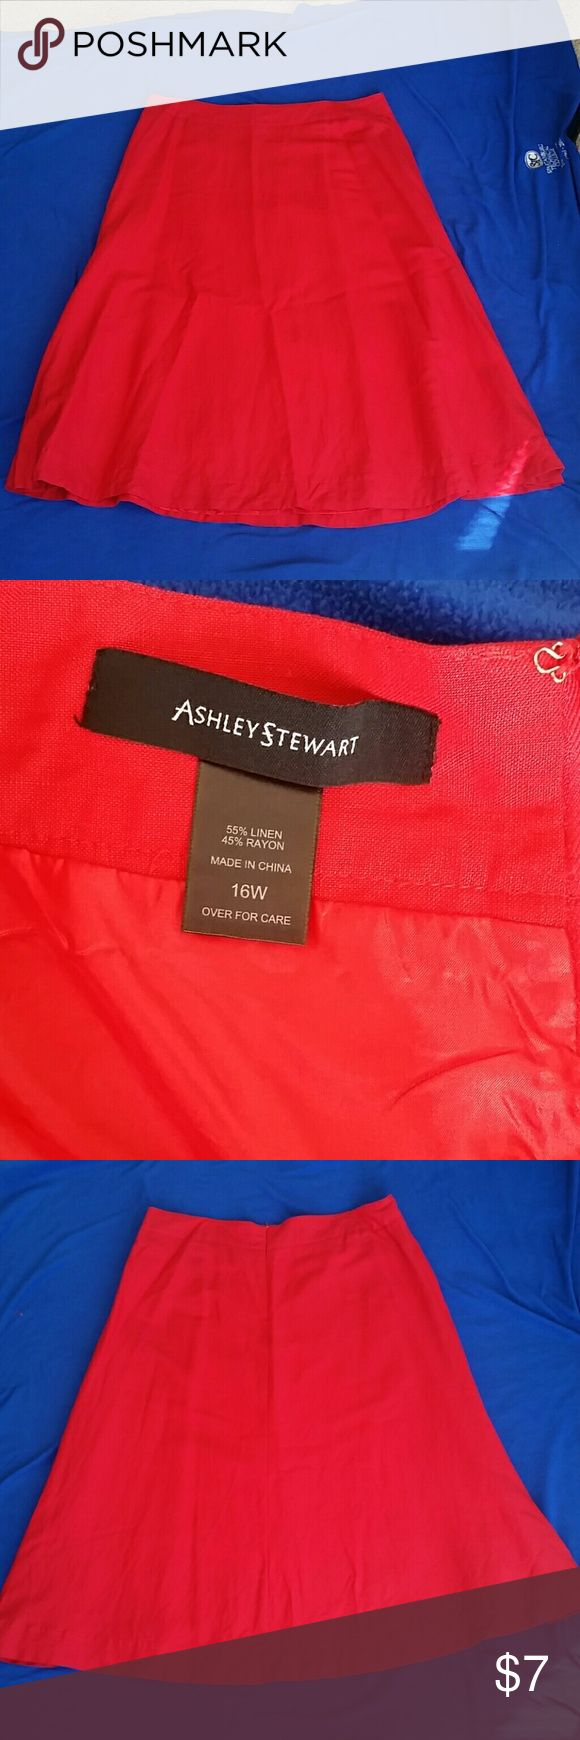 Ashley Stewart Red Skirt Red Ashley Stewart Skirt Ashley Stewart Skirts Maxi